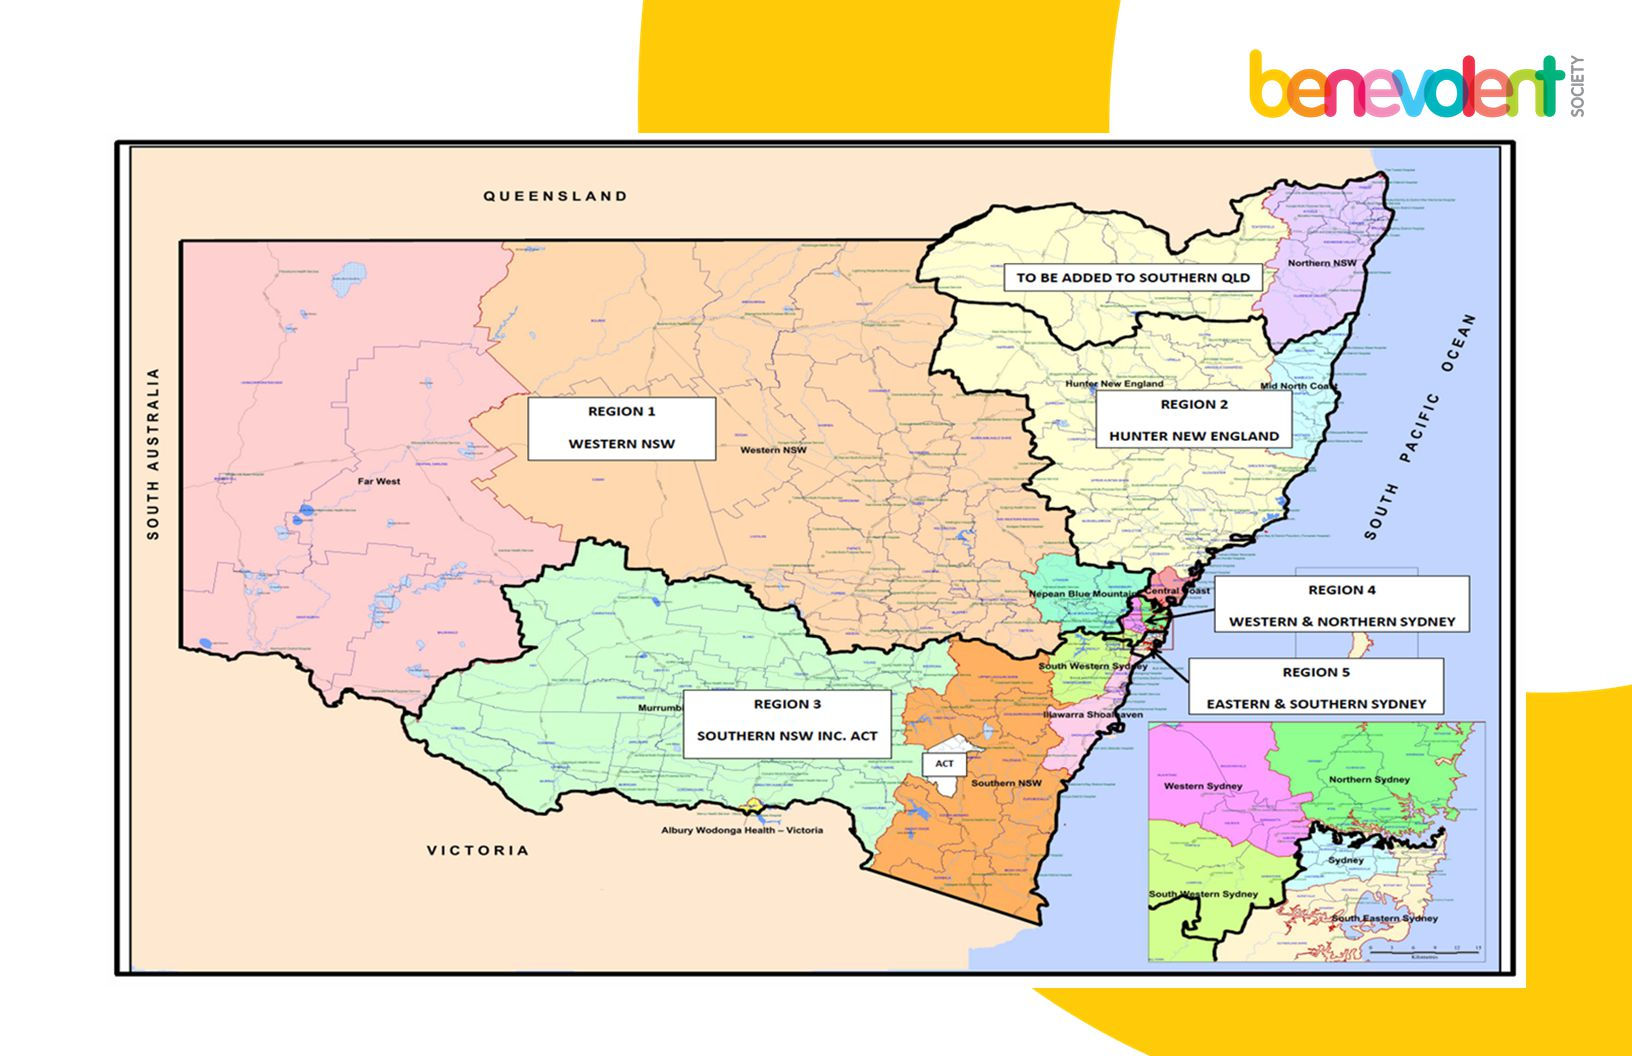 Our Regions are based on NSW Health Districts